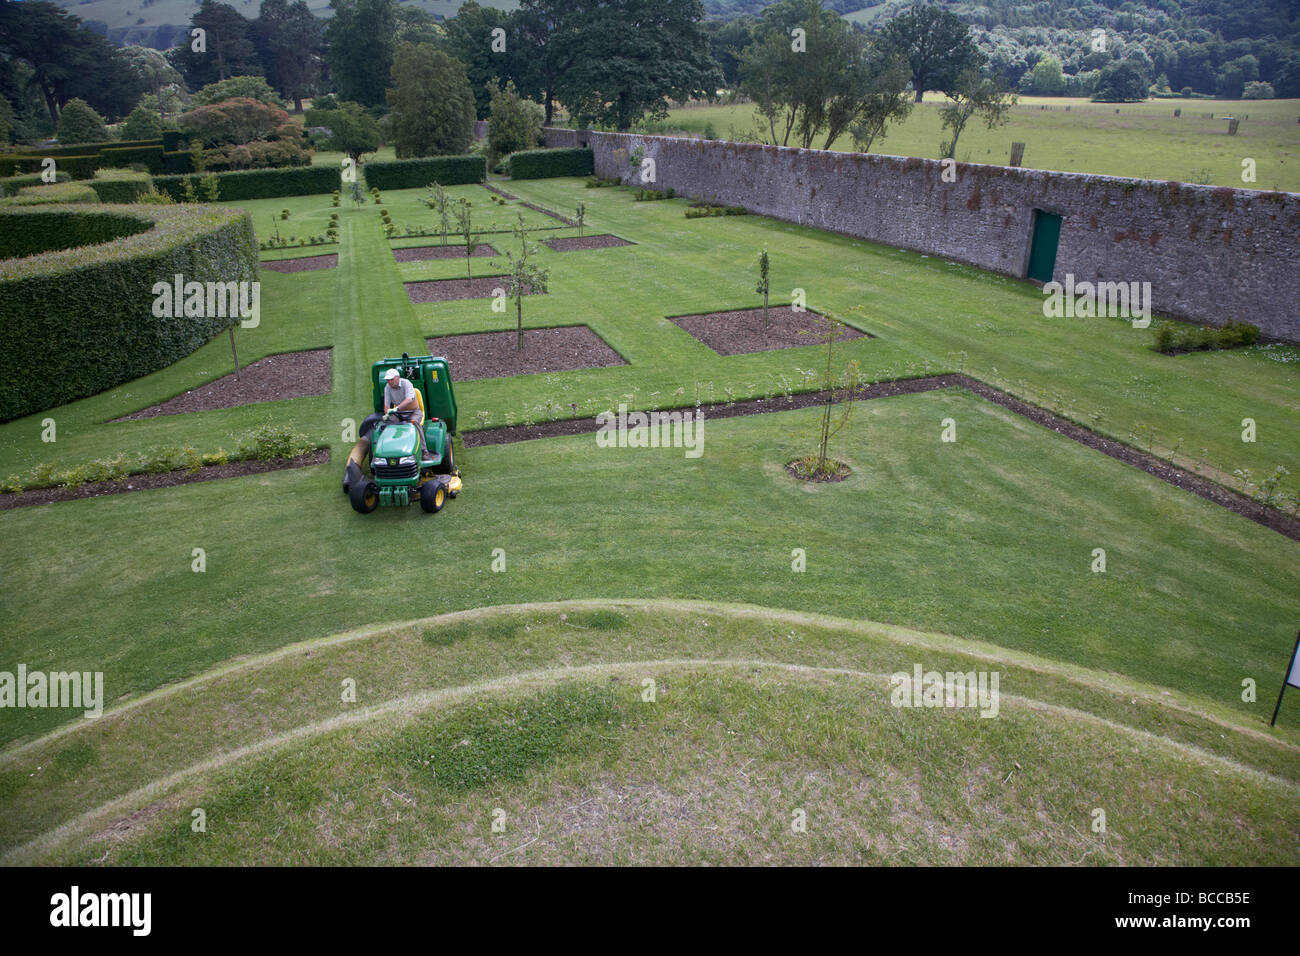 gardener mowing the lawn of the the walled garden at Glenarm castle county antrim northern ireland uk - Stock Image